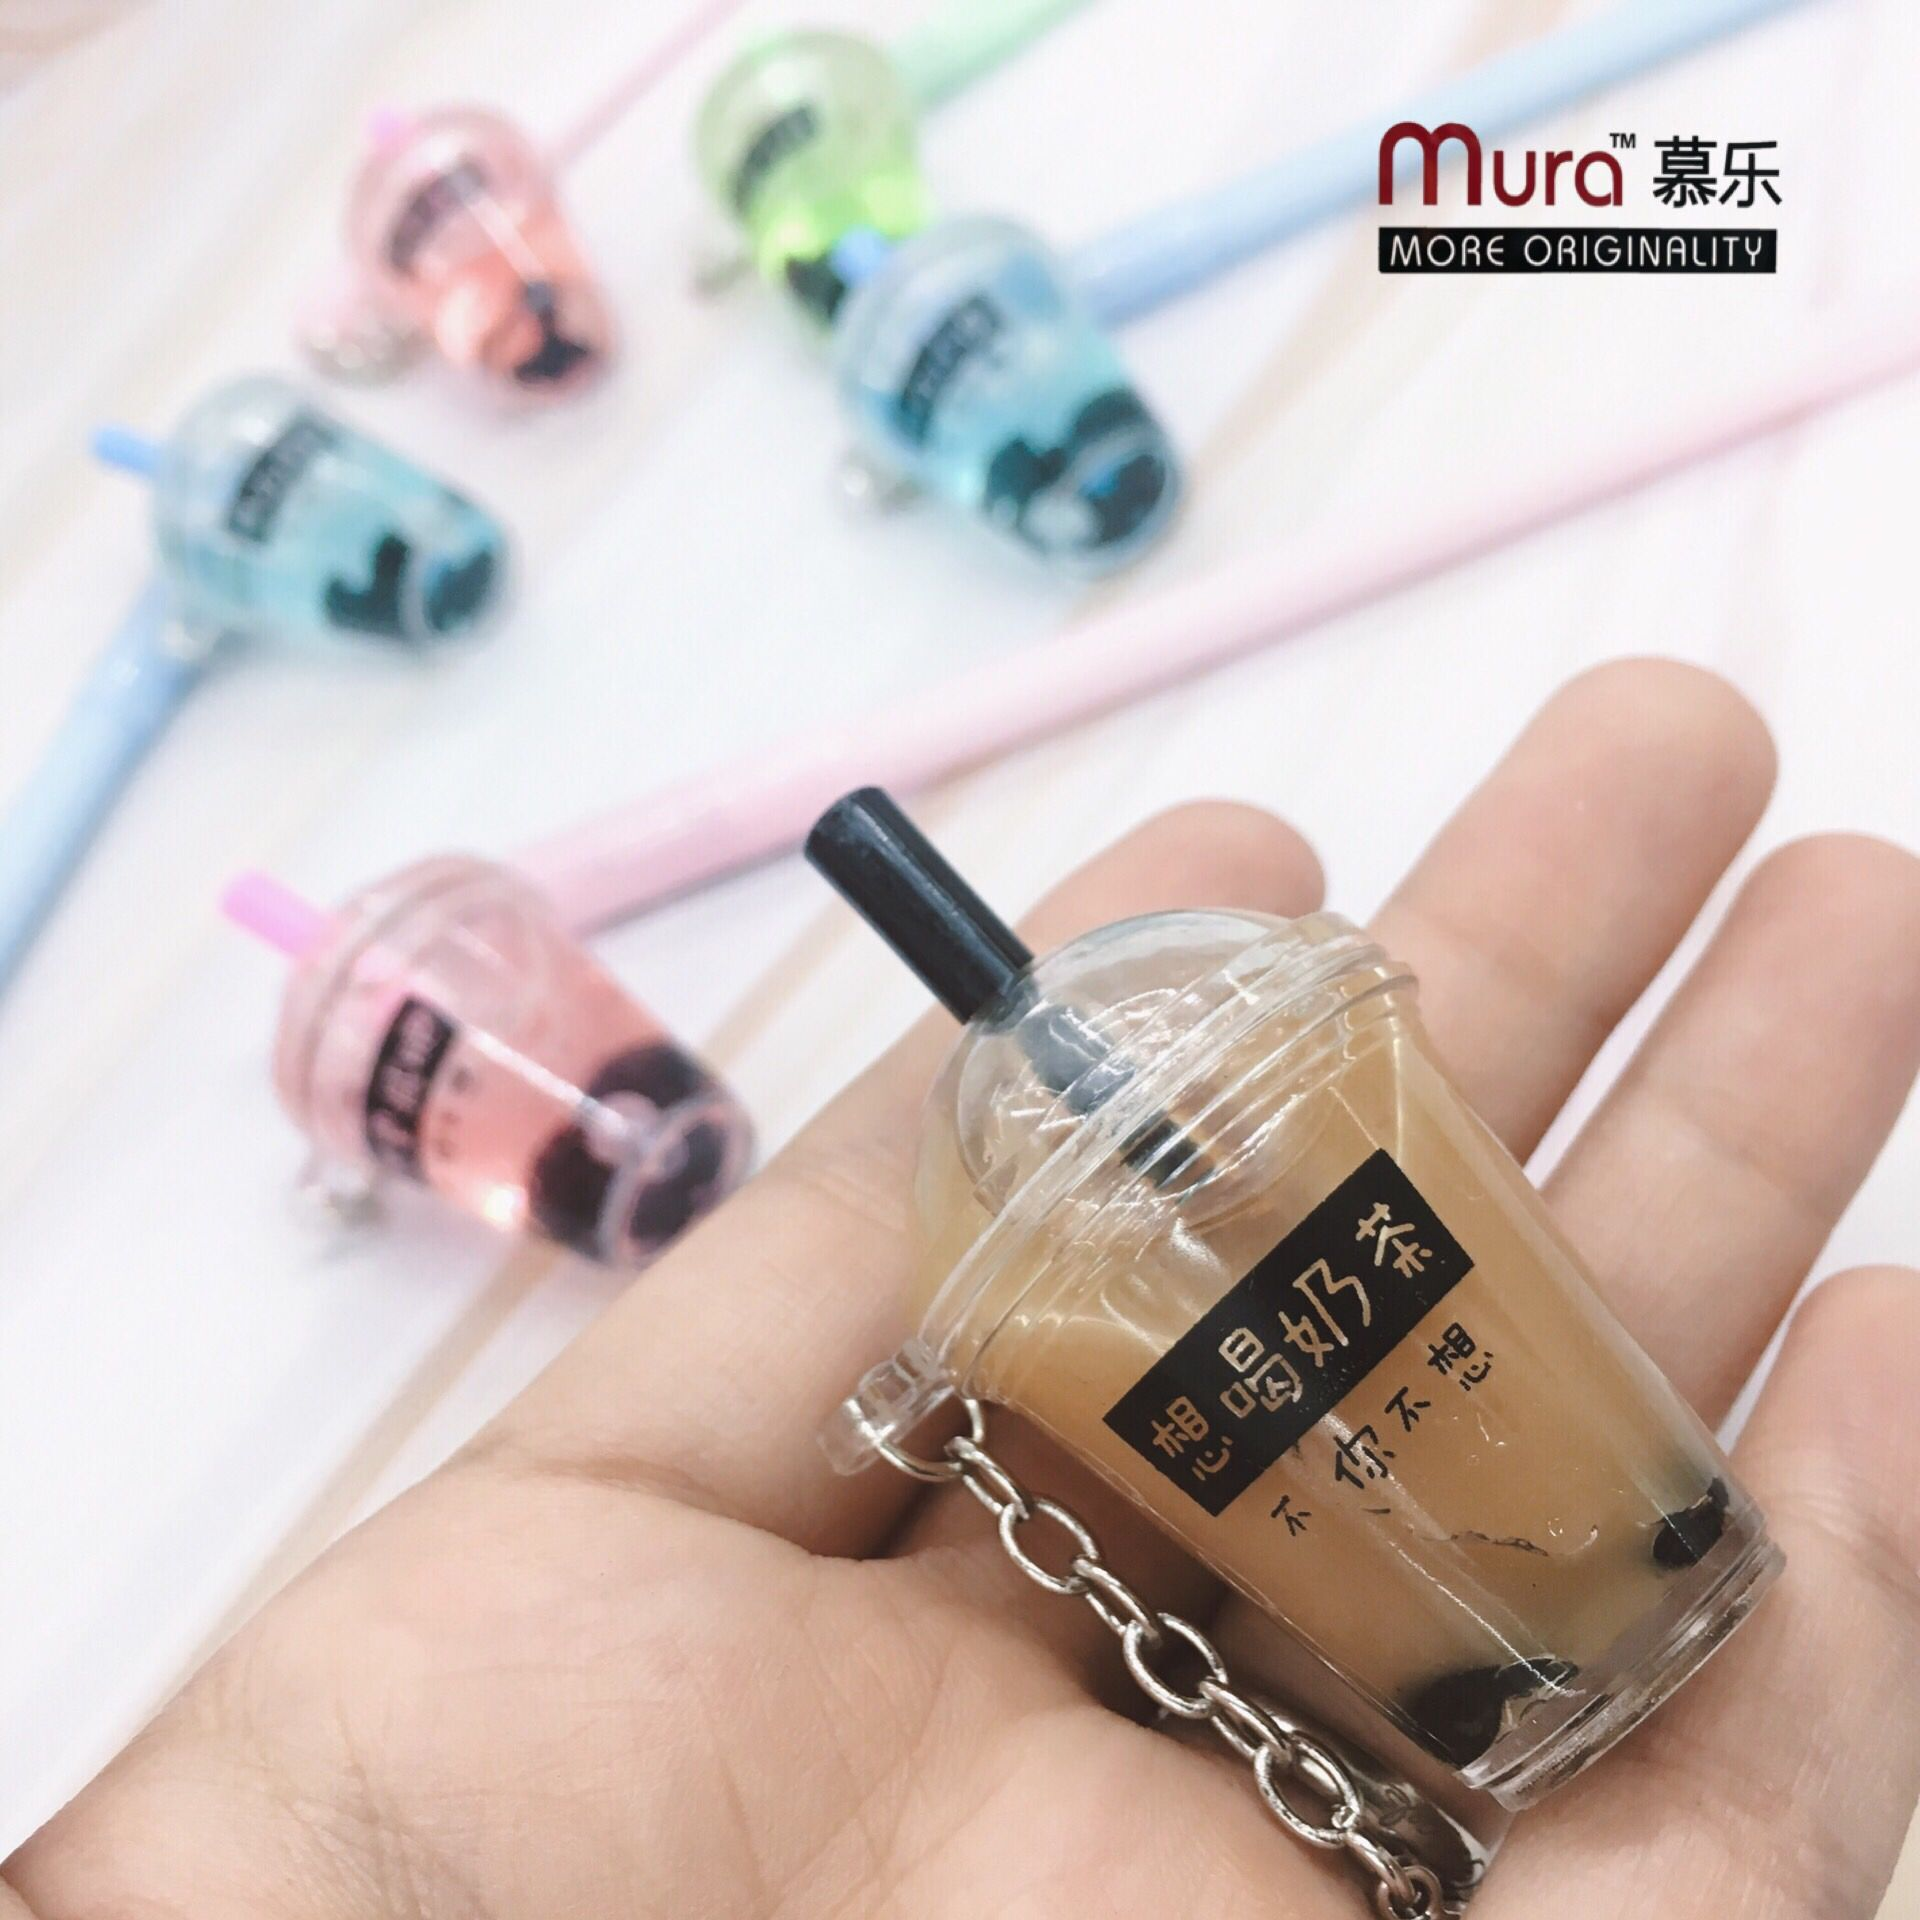 1pcs Gel Pens Kawai Pendant Coffee Cup Black Gel-ink Pen Student Pens For Writing Cute Stationery Office School Supplies 0.5mm